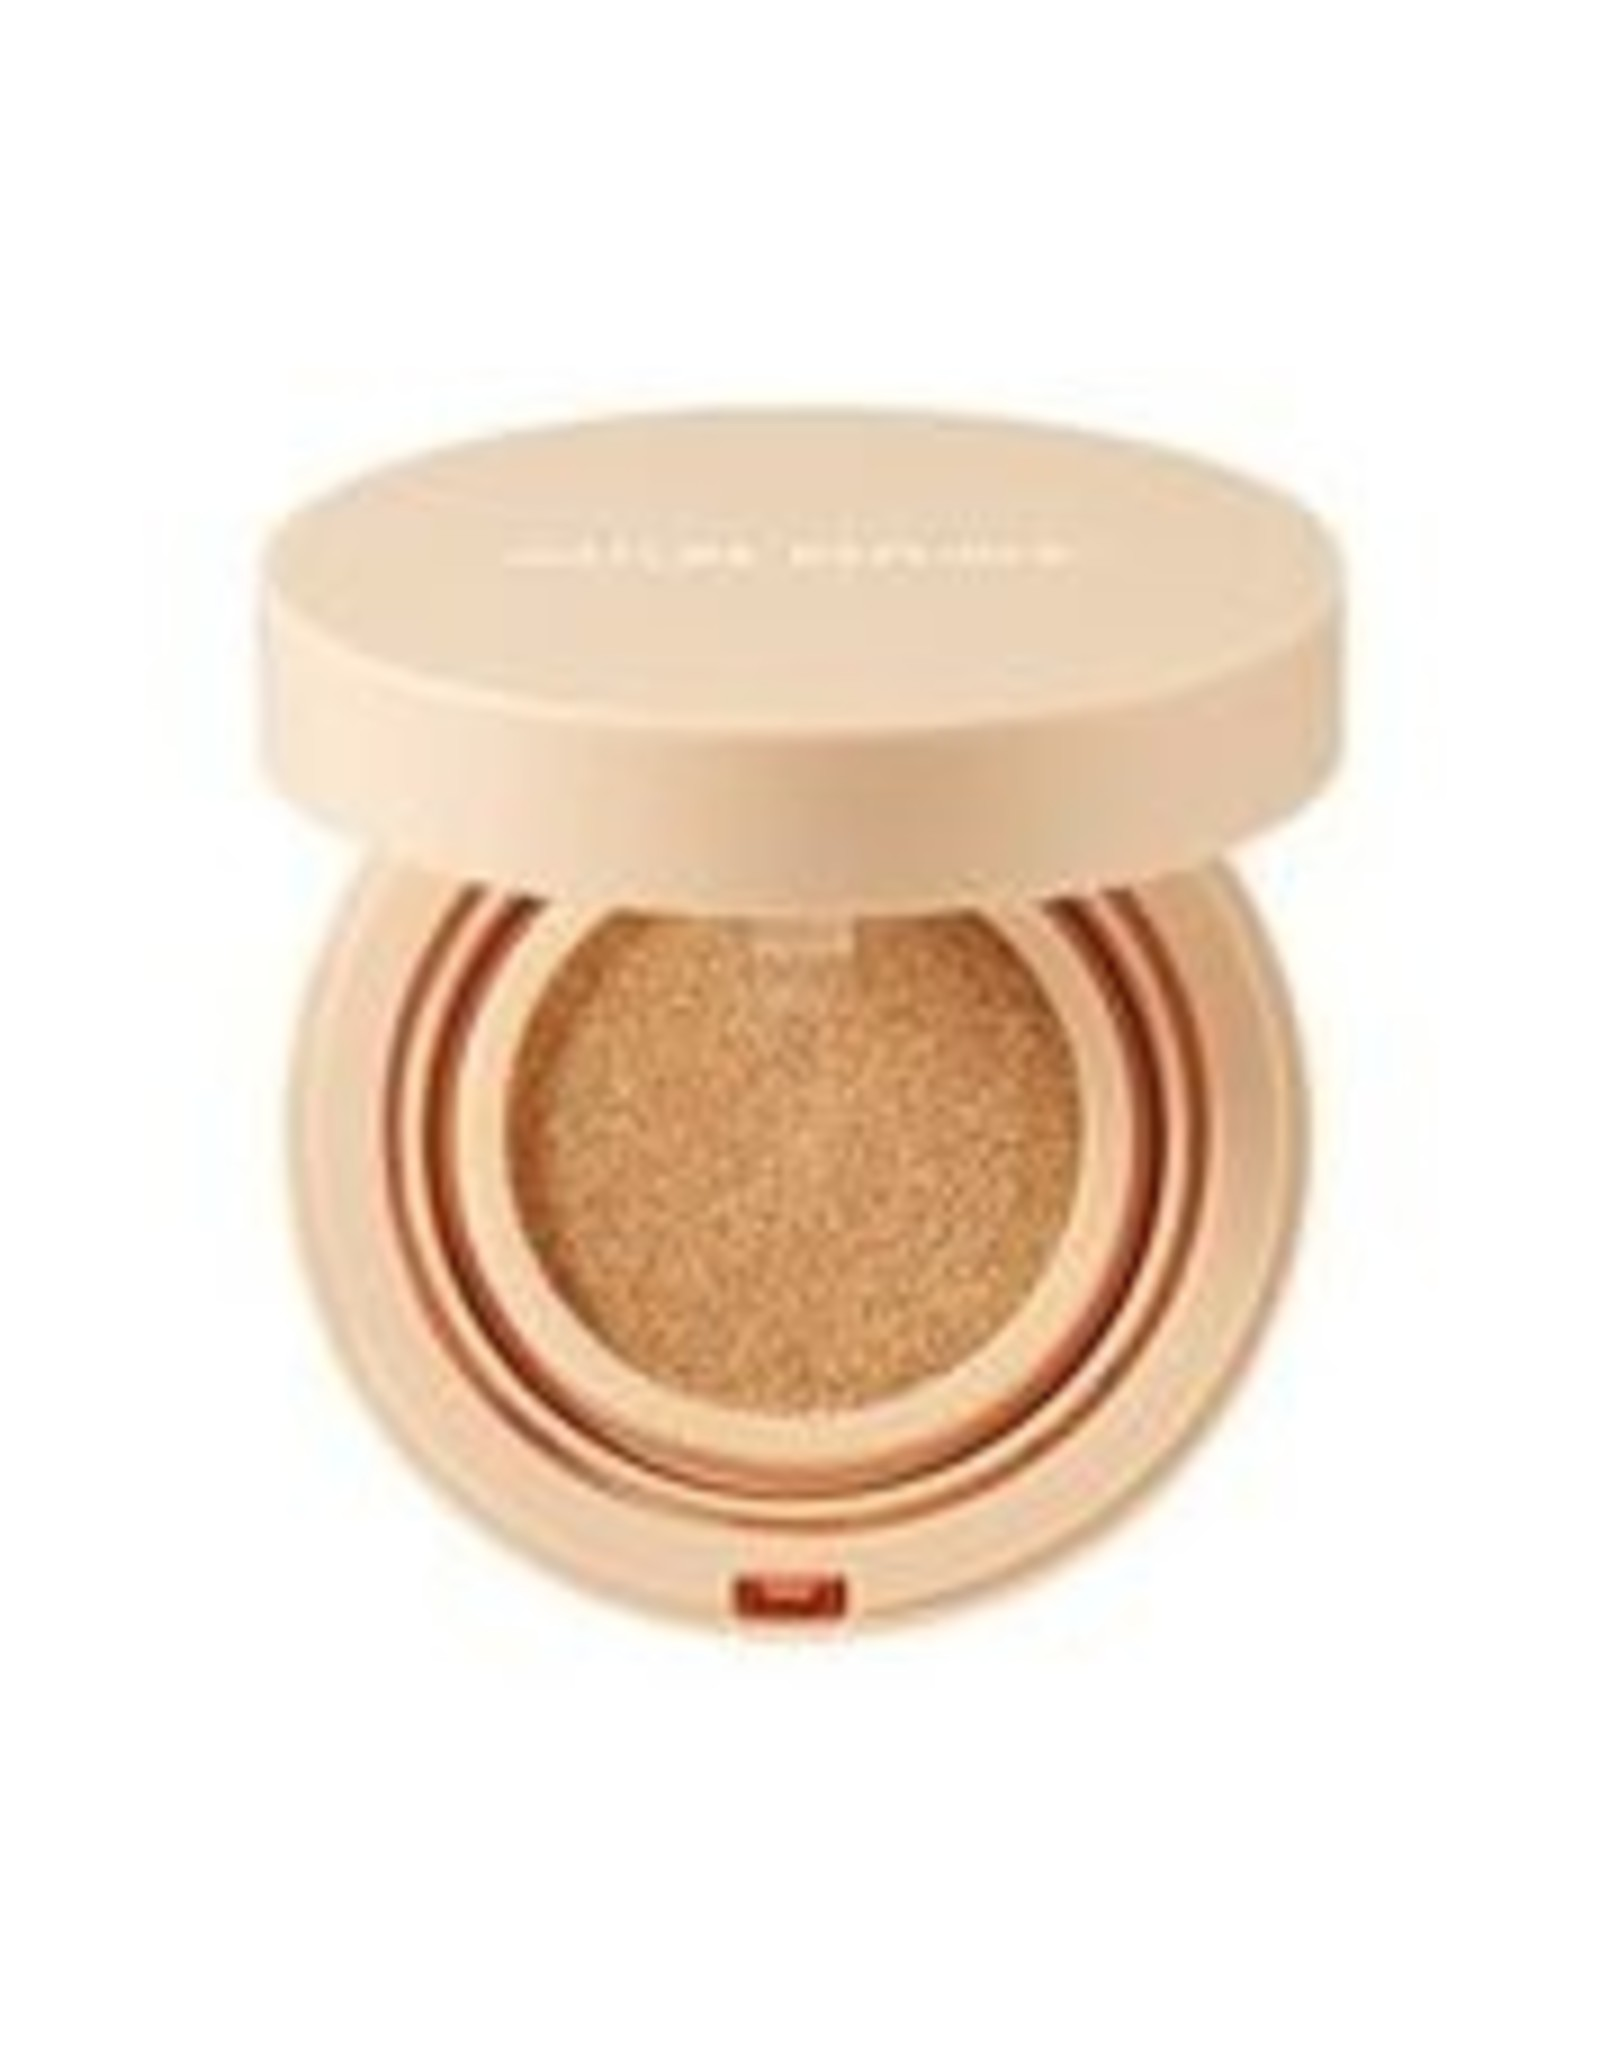 Provence Air Skin Fit One Day Lasting Foundation Cushion Y21 Pure Vanilla